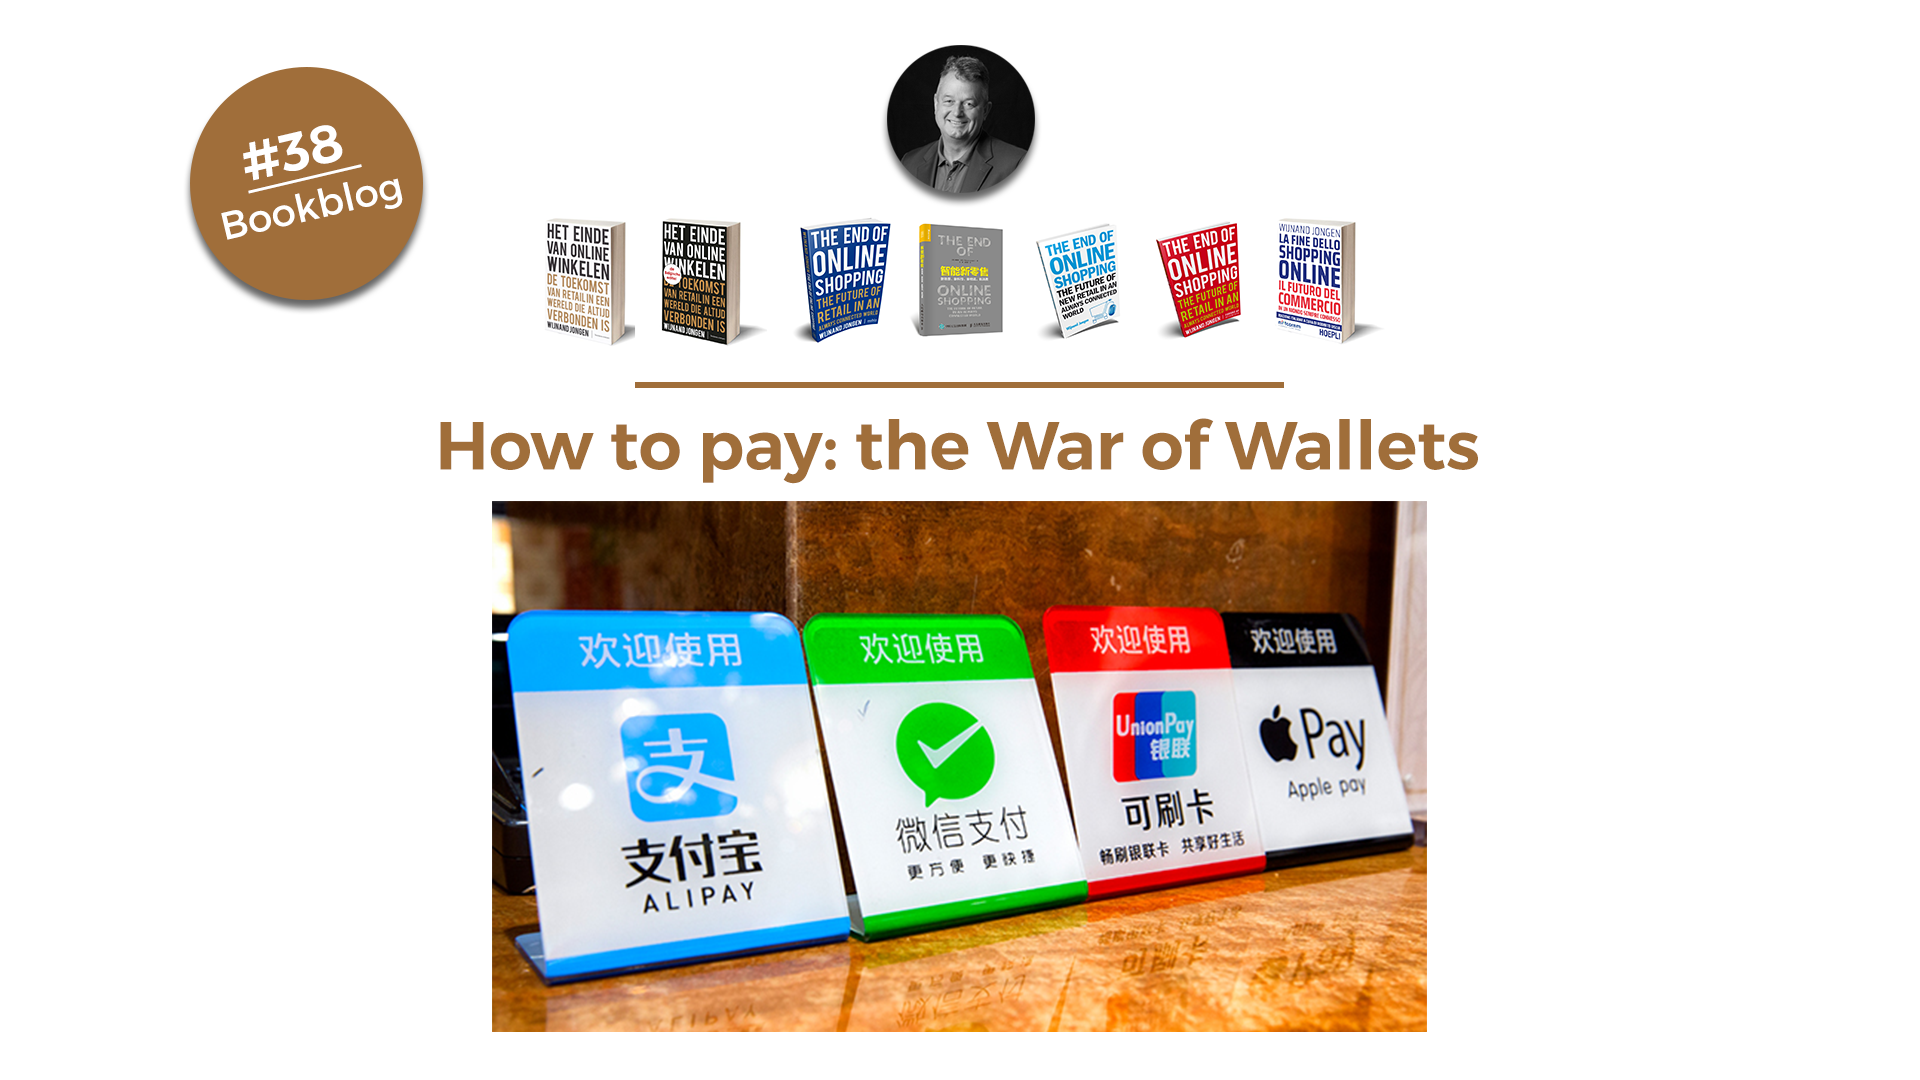 How to pay: the War of Wallets